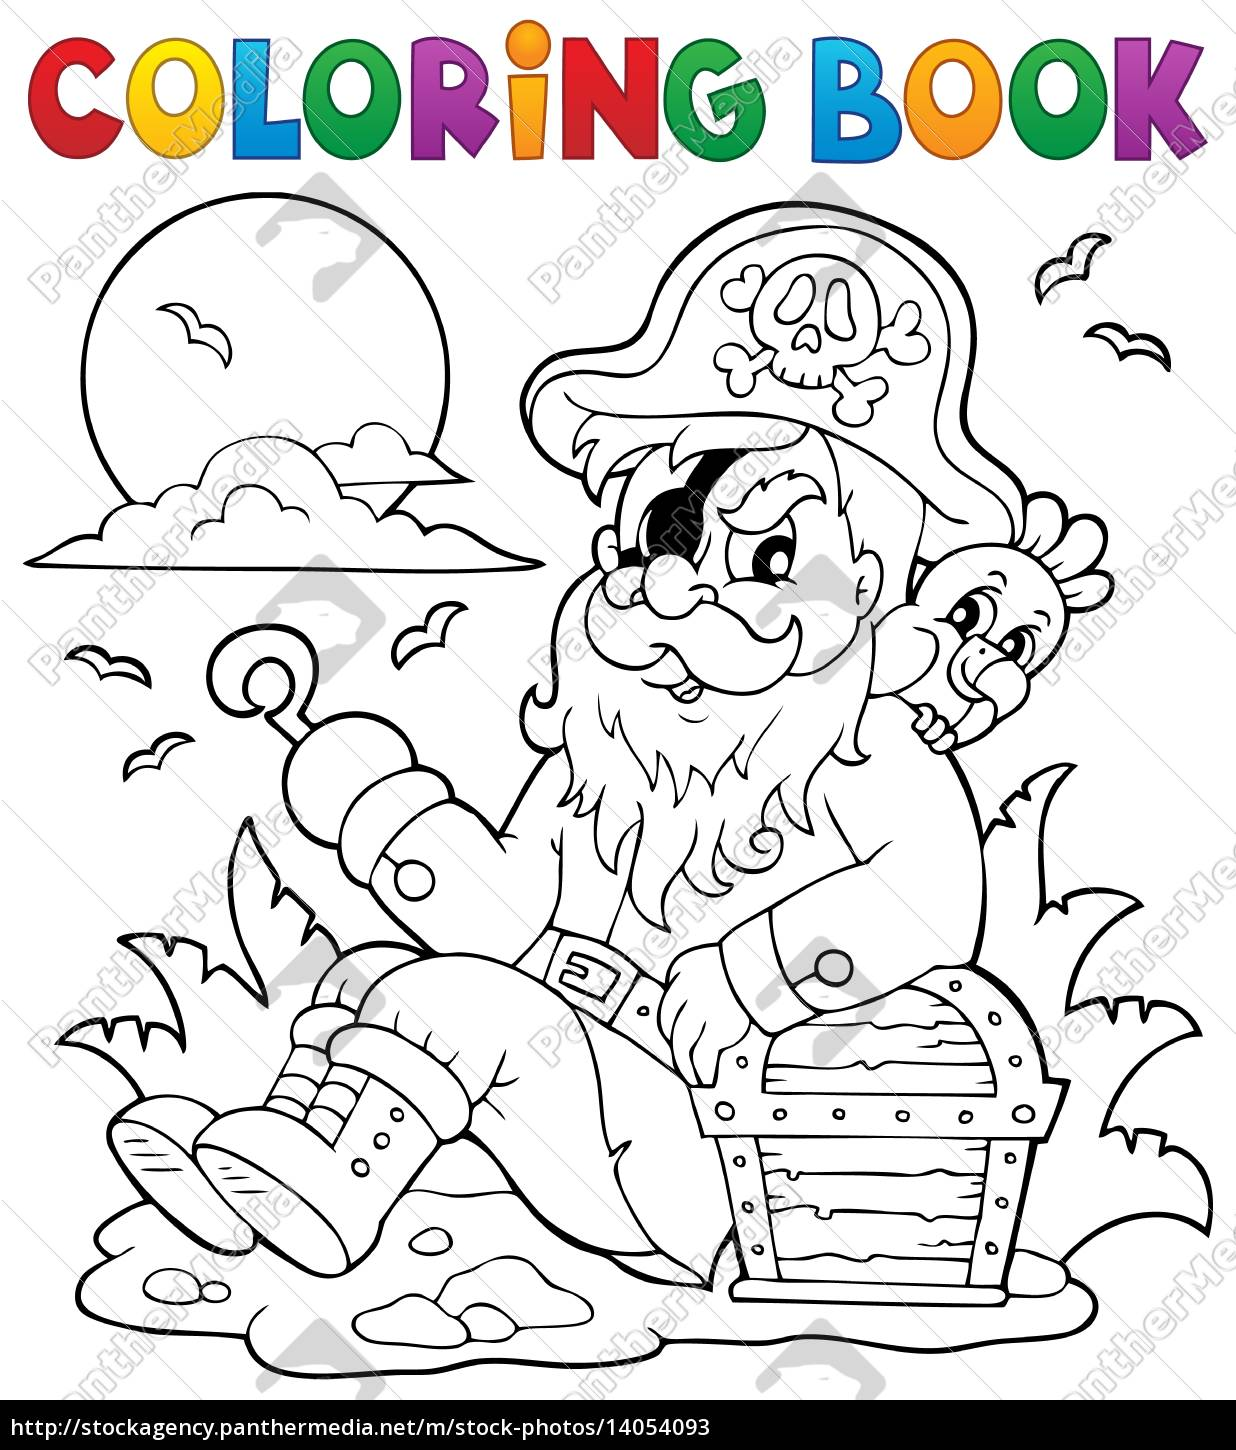 coloring, book, with, sitting, pirate - 14054093